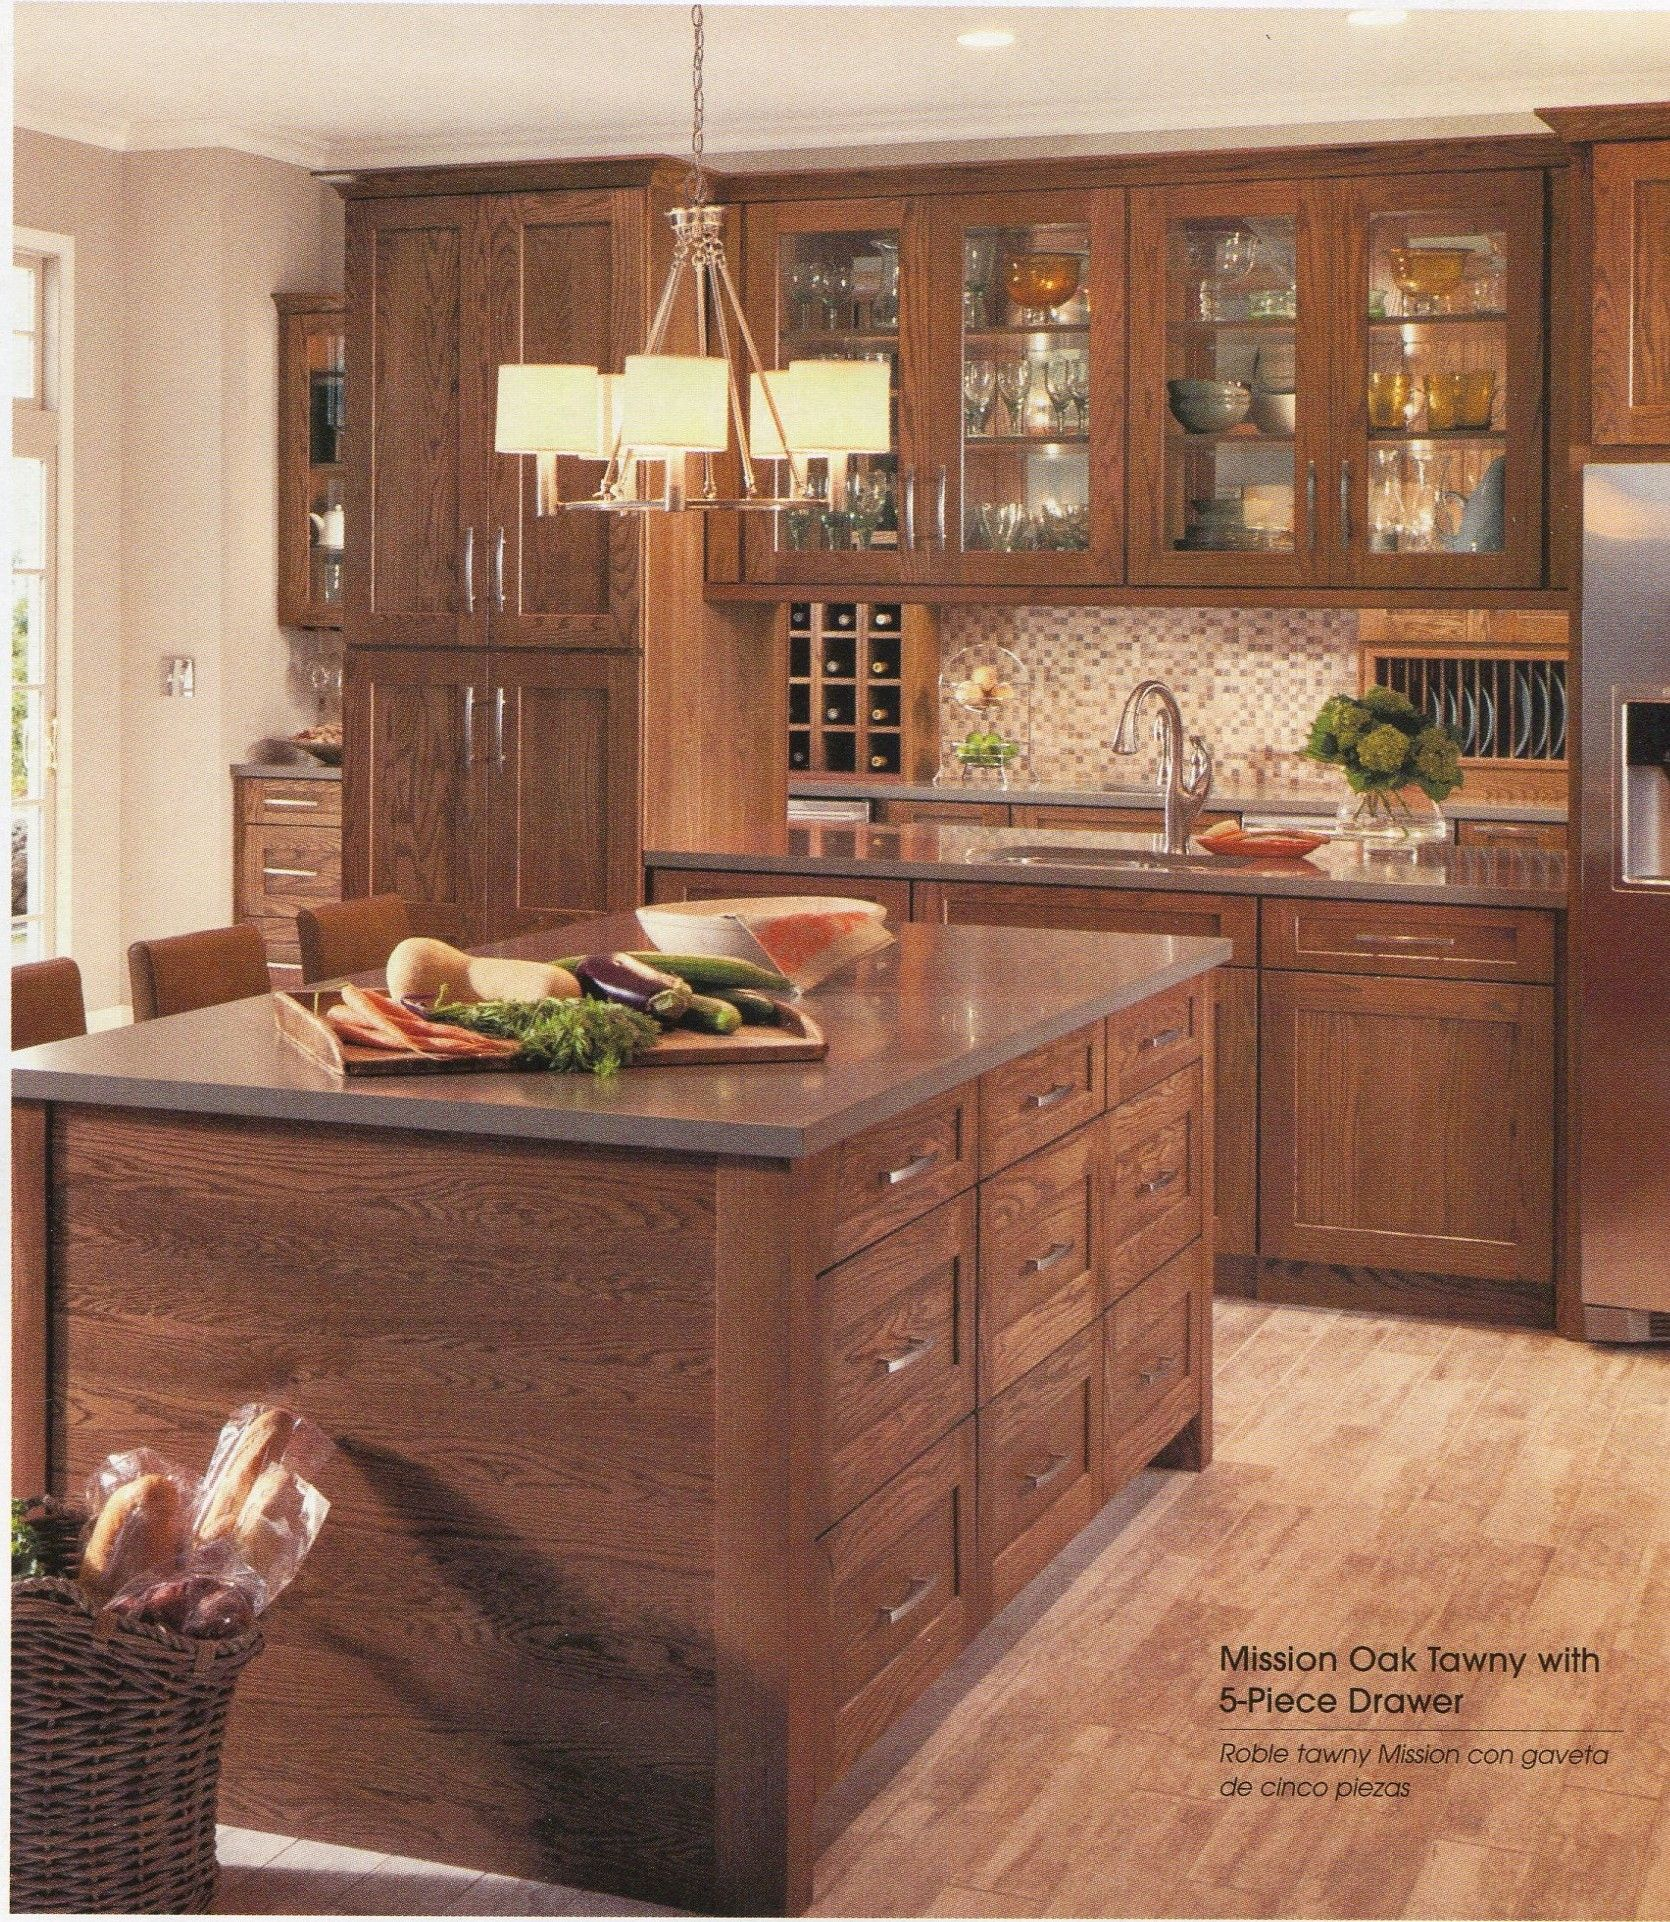 Large Island Nice Combination Of Wood Cabinetry With Light Colored Granite Countertop Log Home Kitchens Stained Kitchen Cabinets Beautiful Kitchen Cabinets